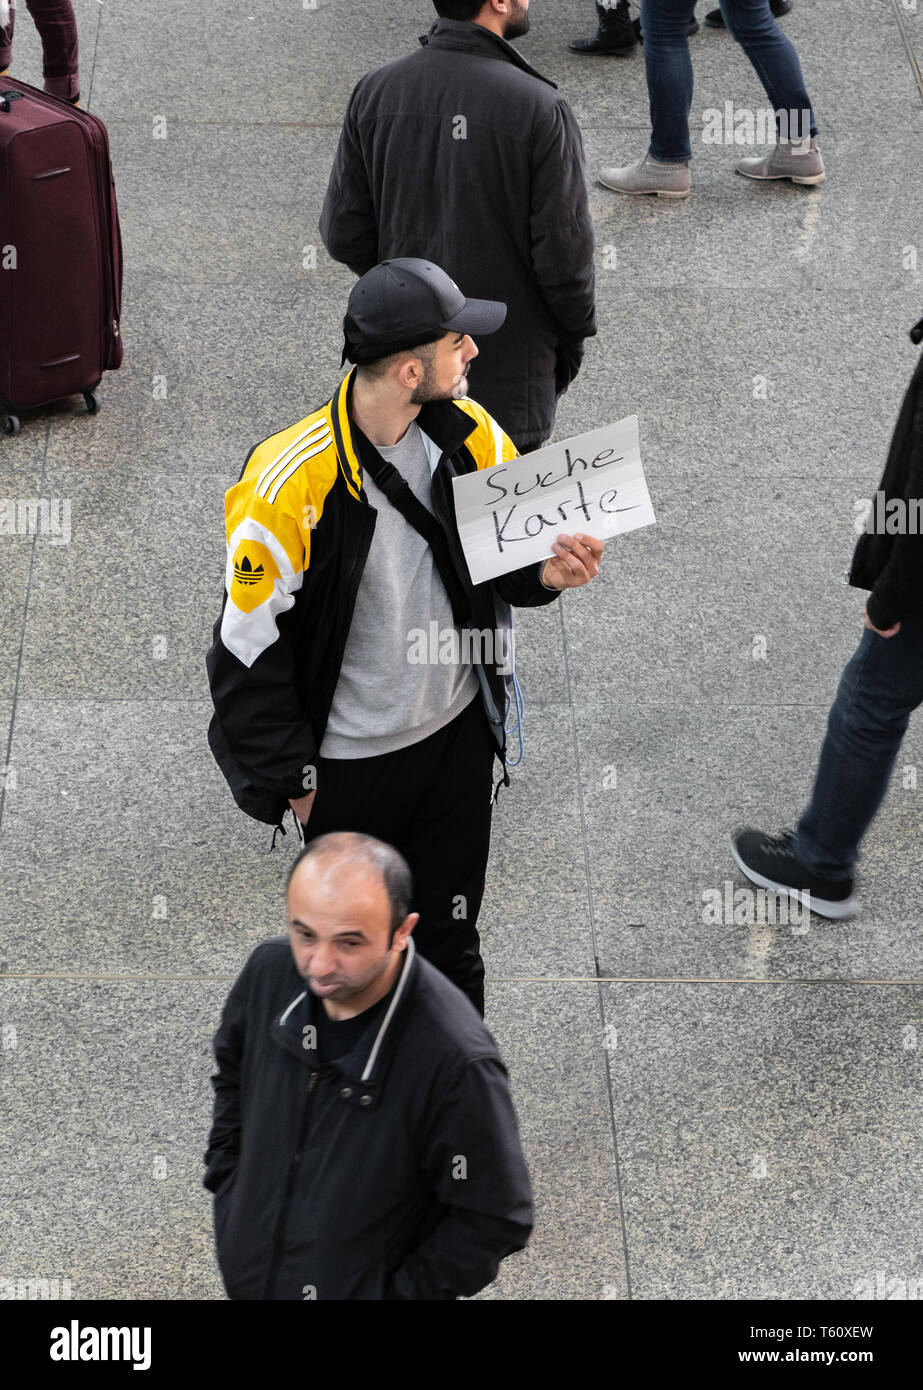 CENTRAL STATIONS, MUNICH, APRIL 6, 2019: borussia dortmund fan looking for tickets for a soccer game. Stock Photo